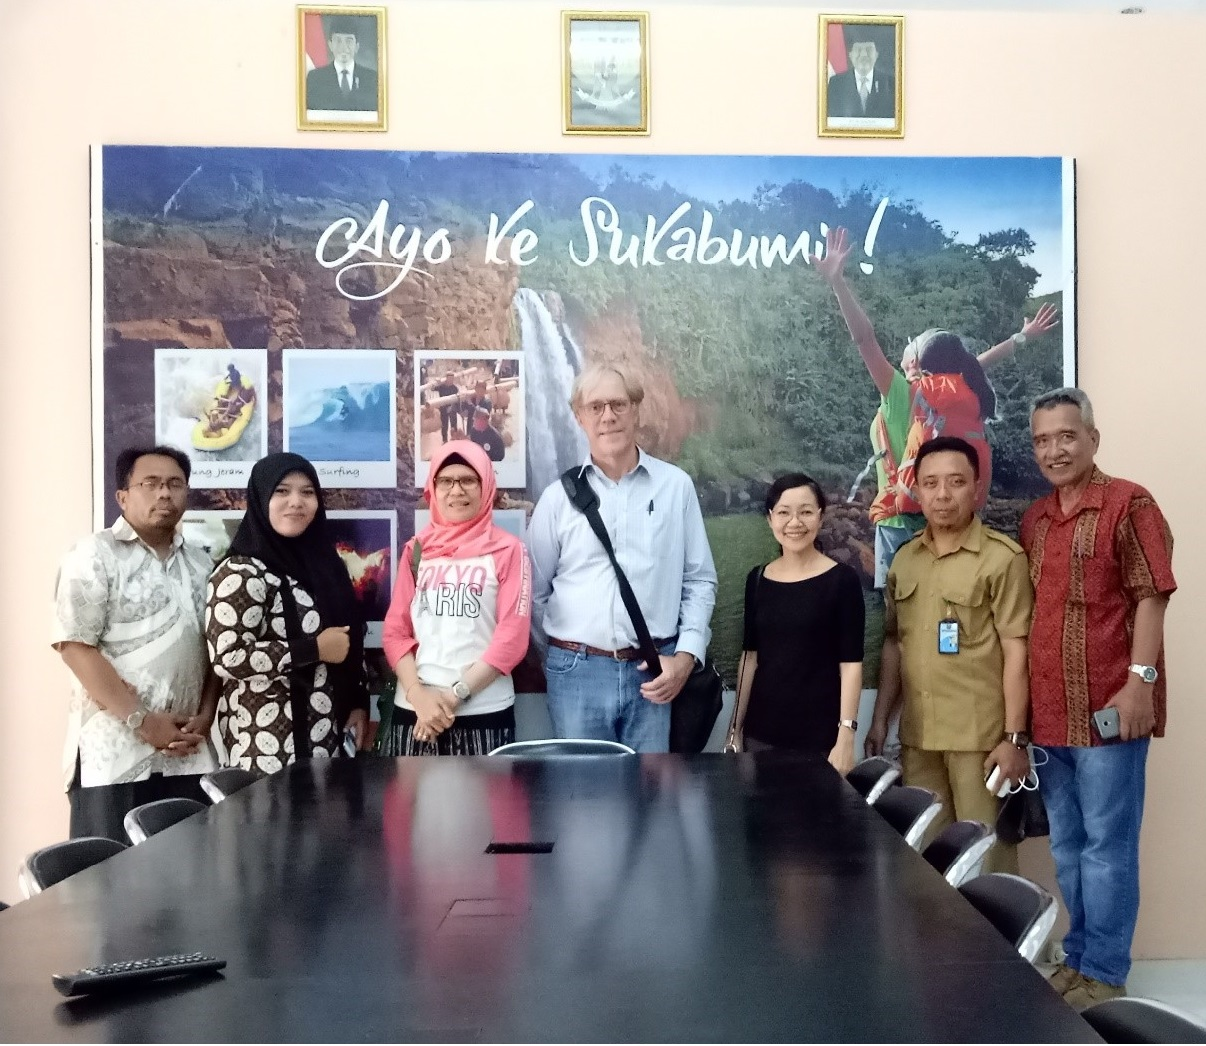 PEMSEA was welcomed by representatives from TP3TP at the Geopark Information Center